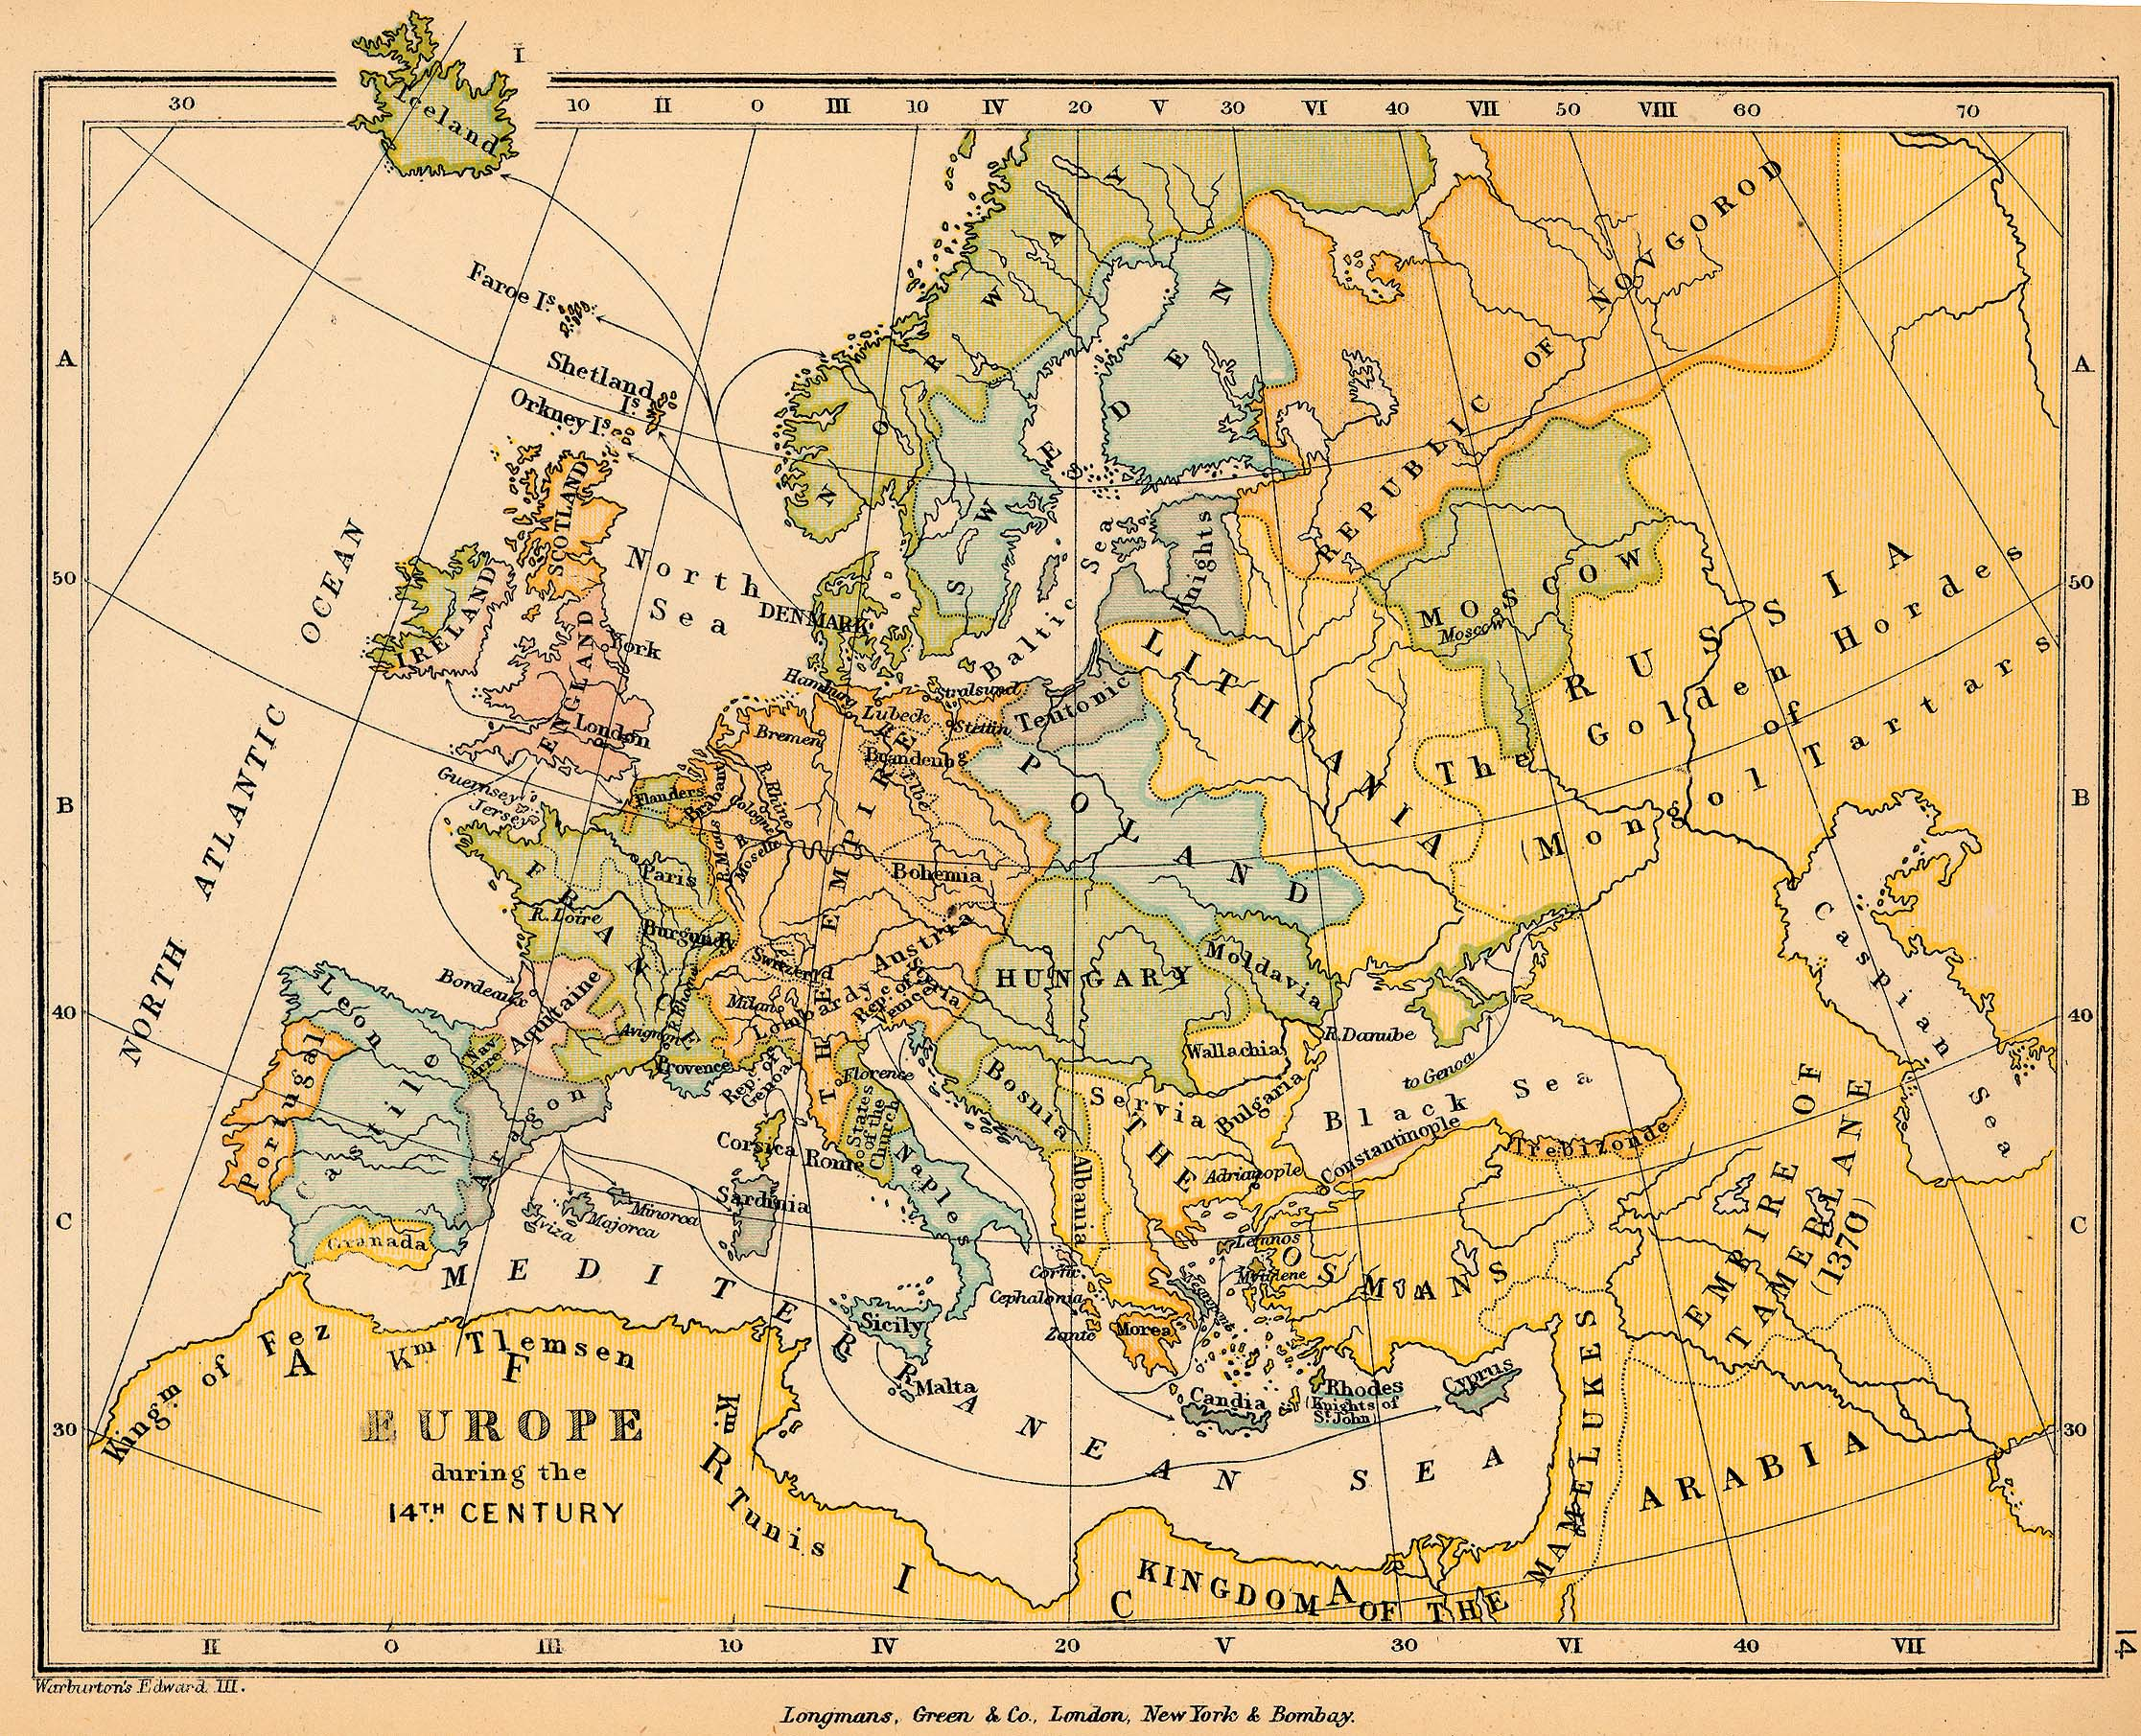 14th Century Map Of Europe.Map Of Europe During The 14th Century